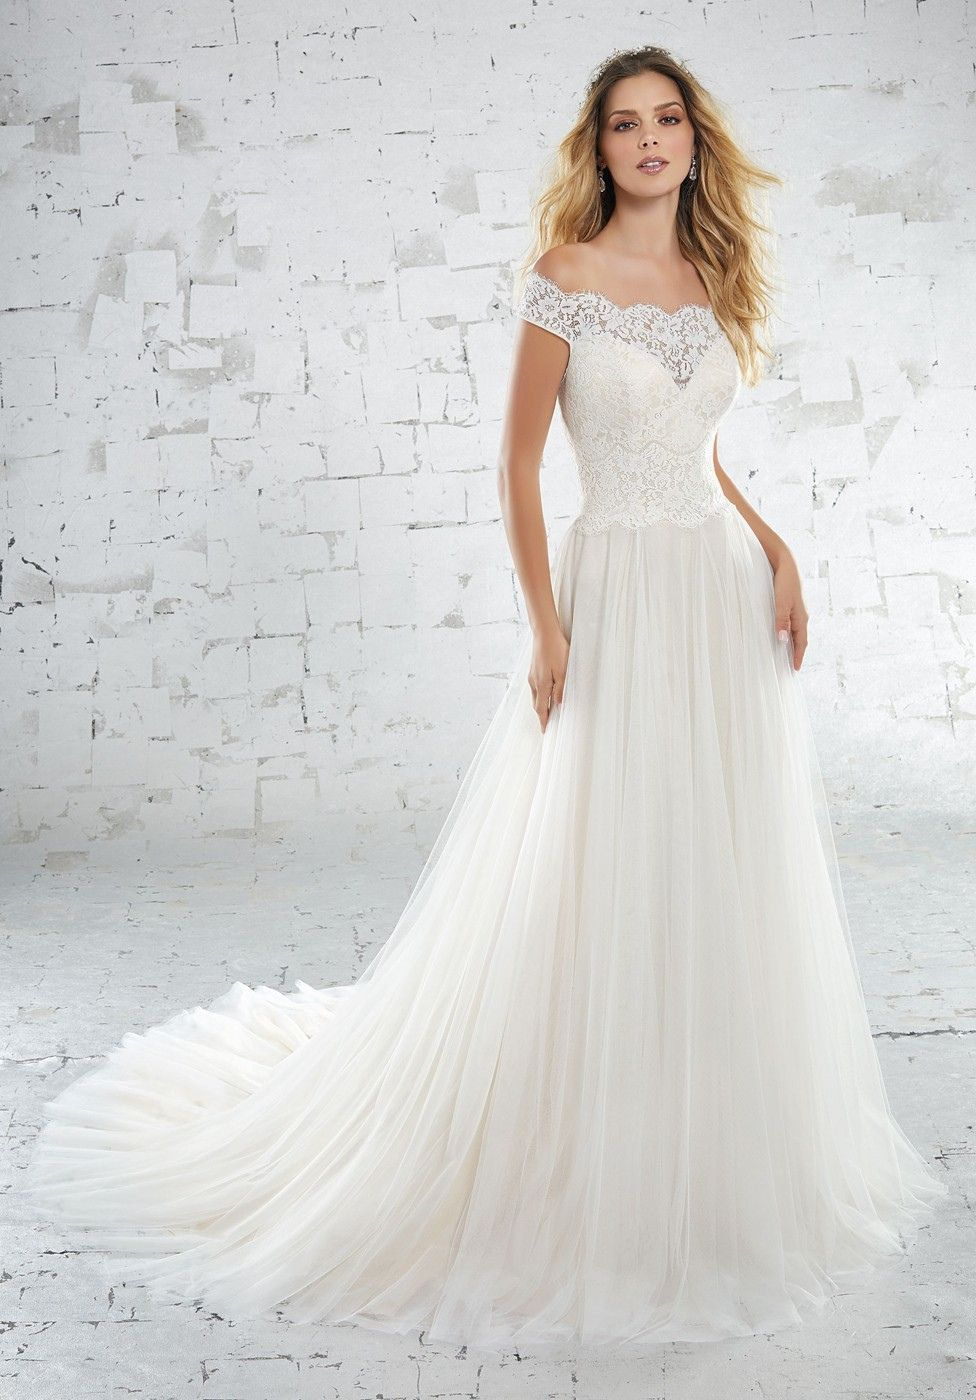 Off the Shoulder Beach Wedding Dress  Dresses for Guest at